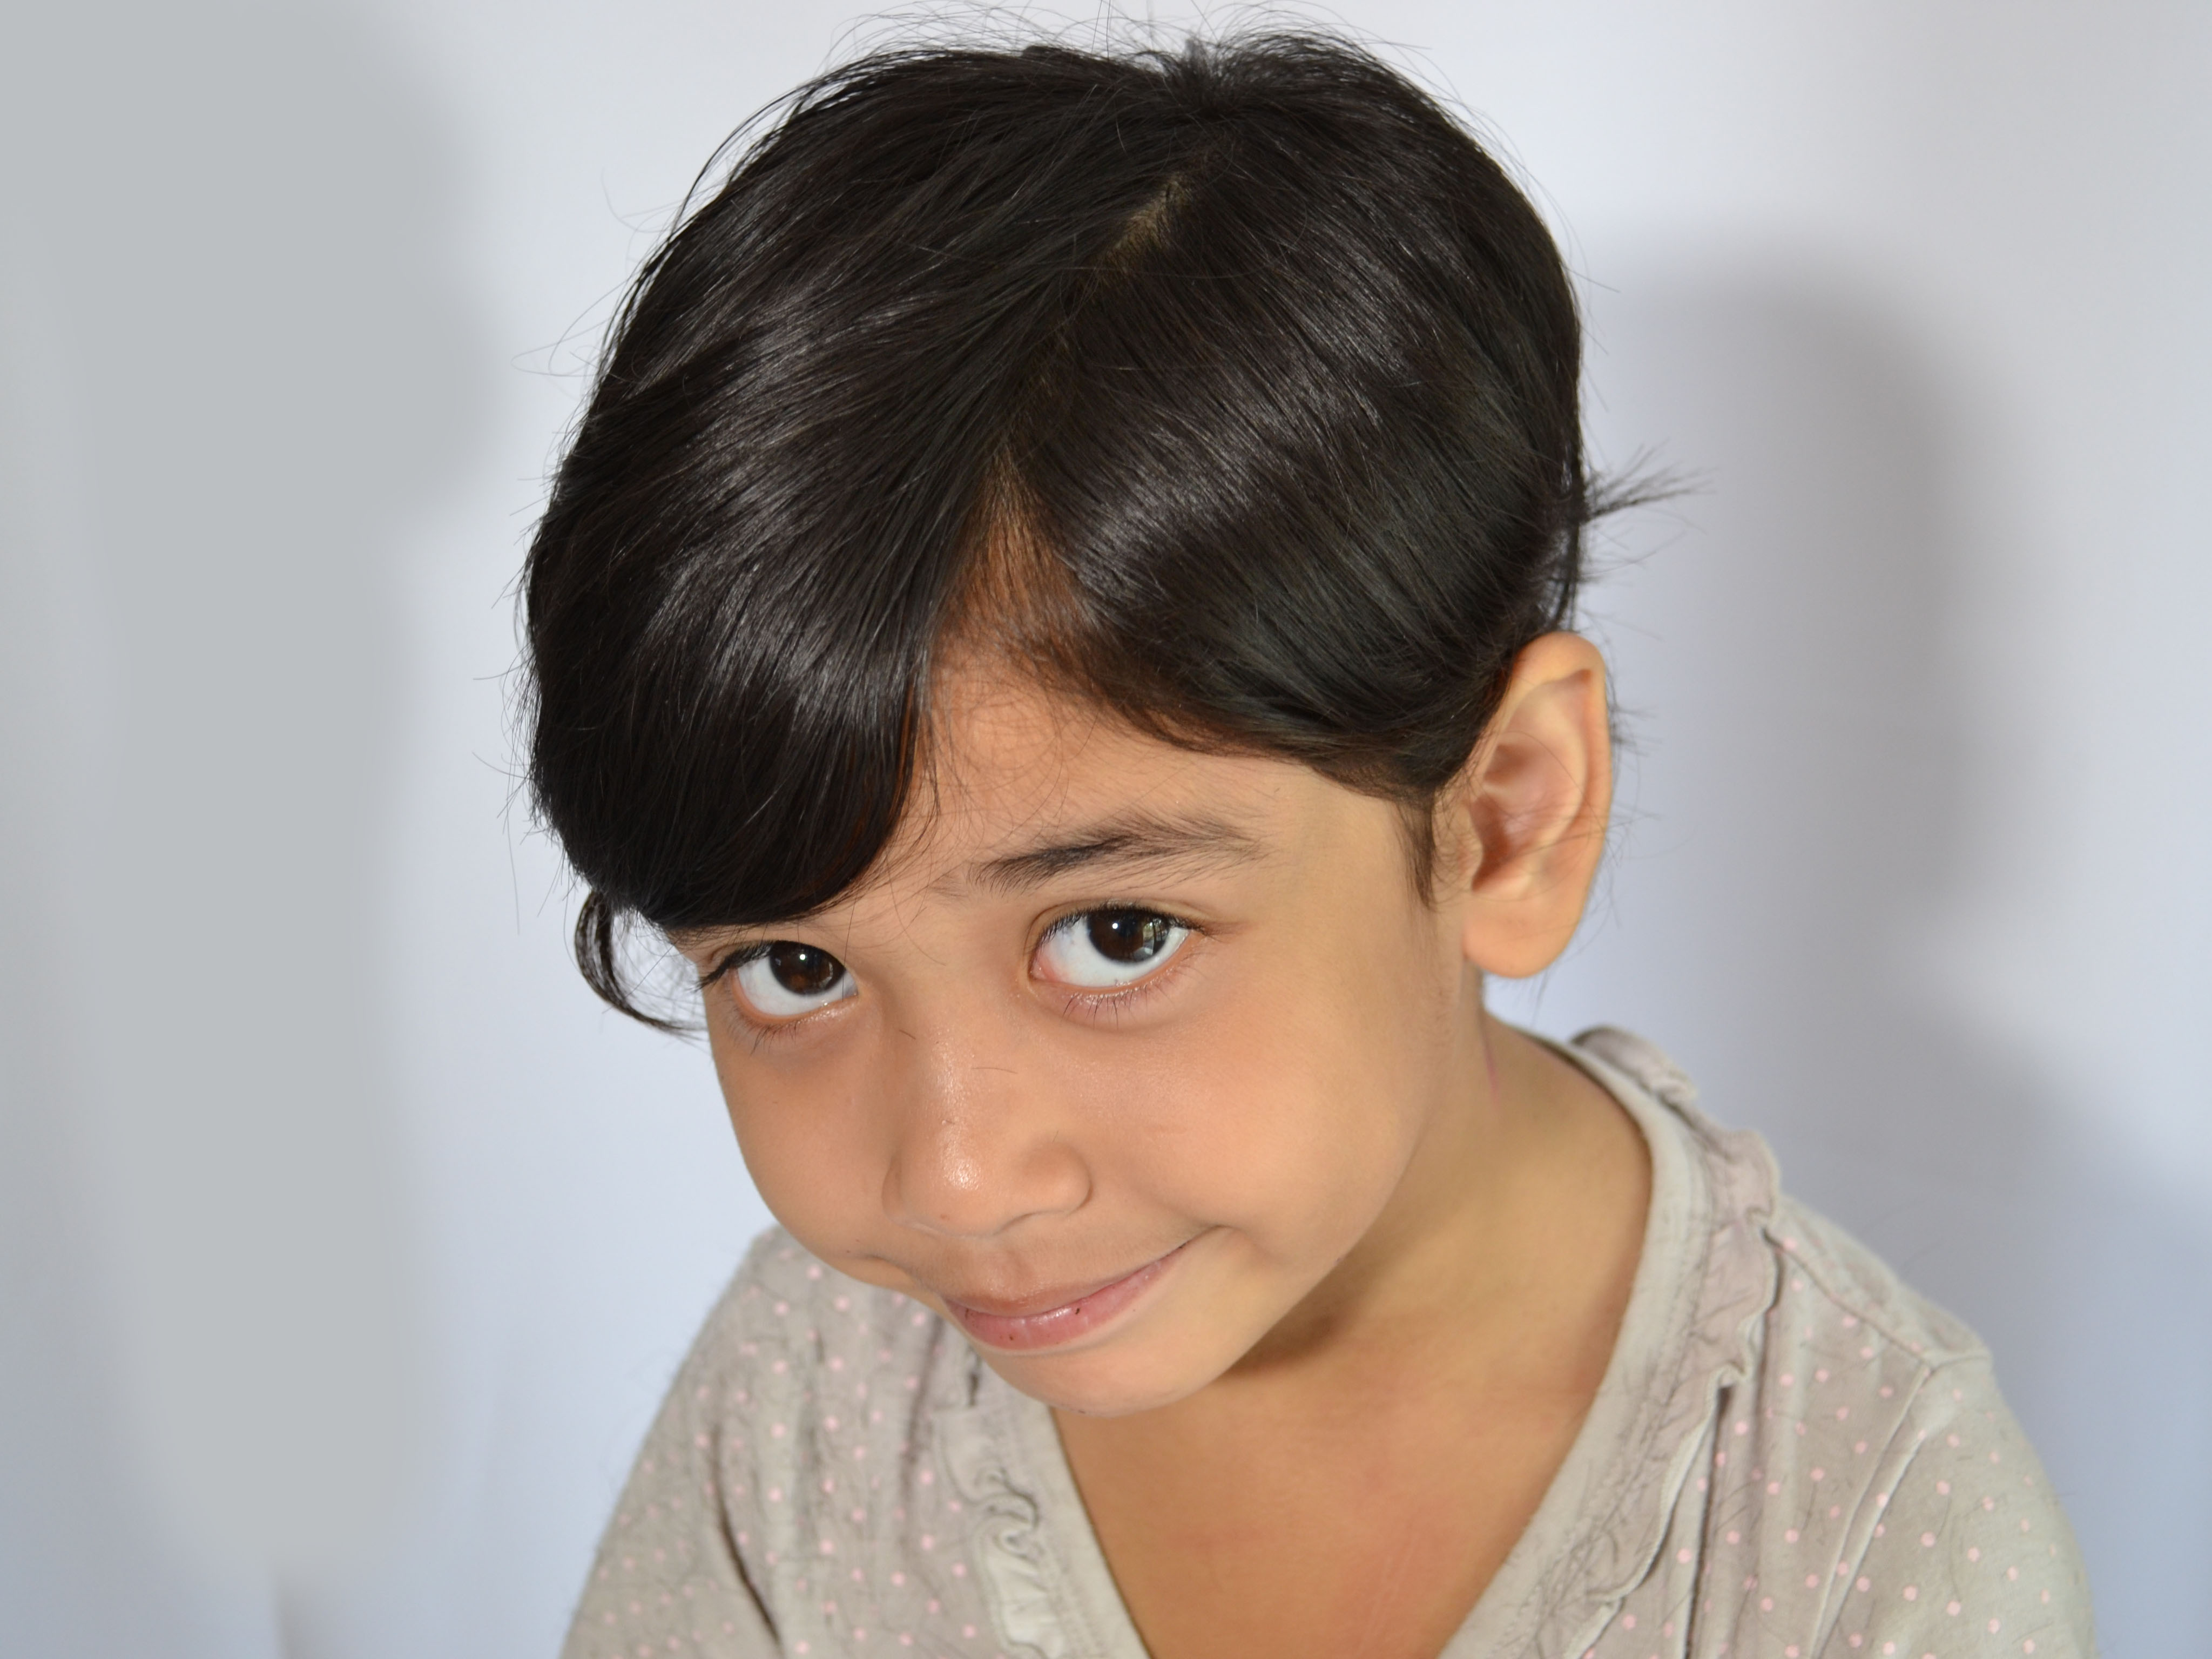 How To Cut Children S Hair 13 Steps With Pictures